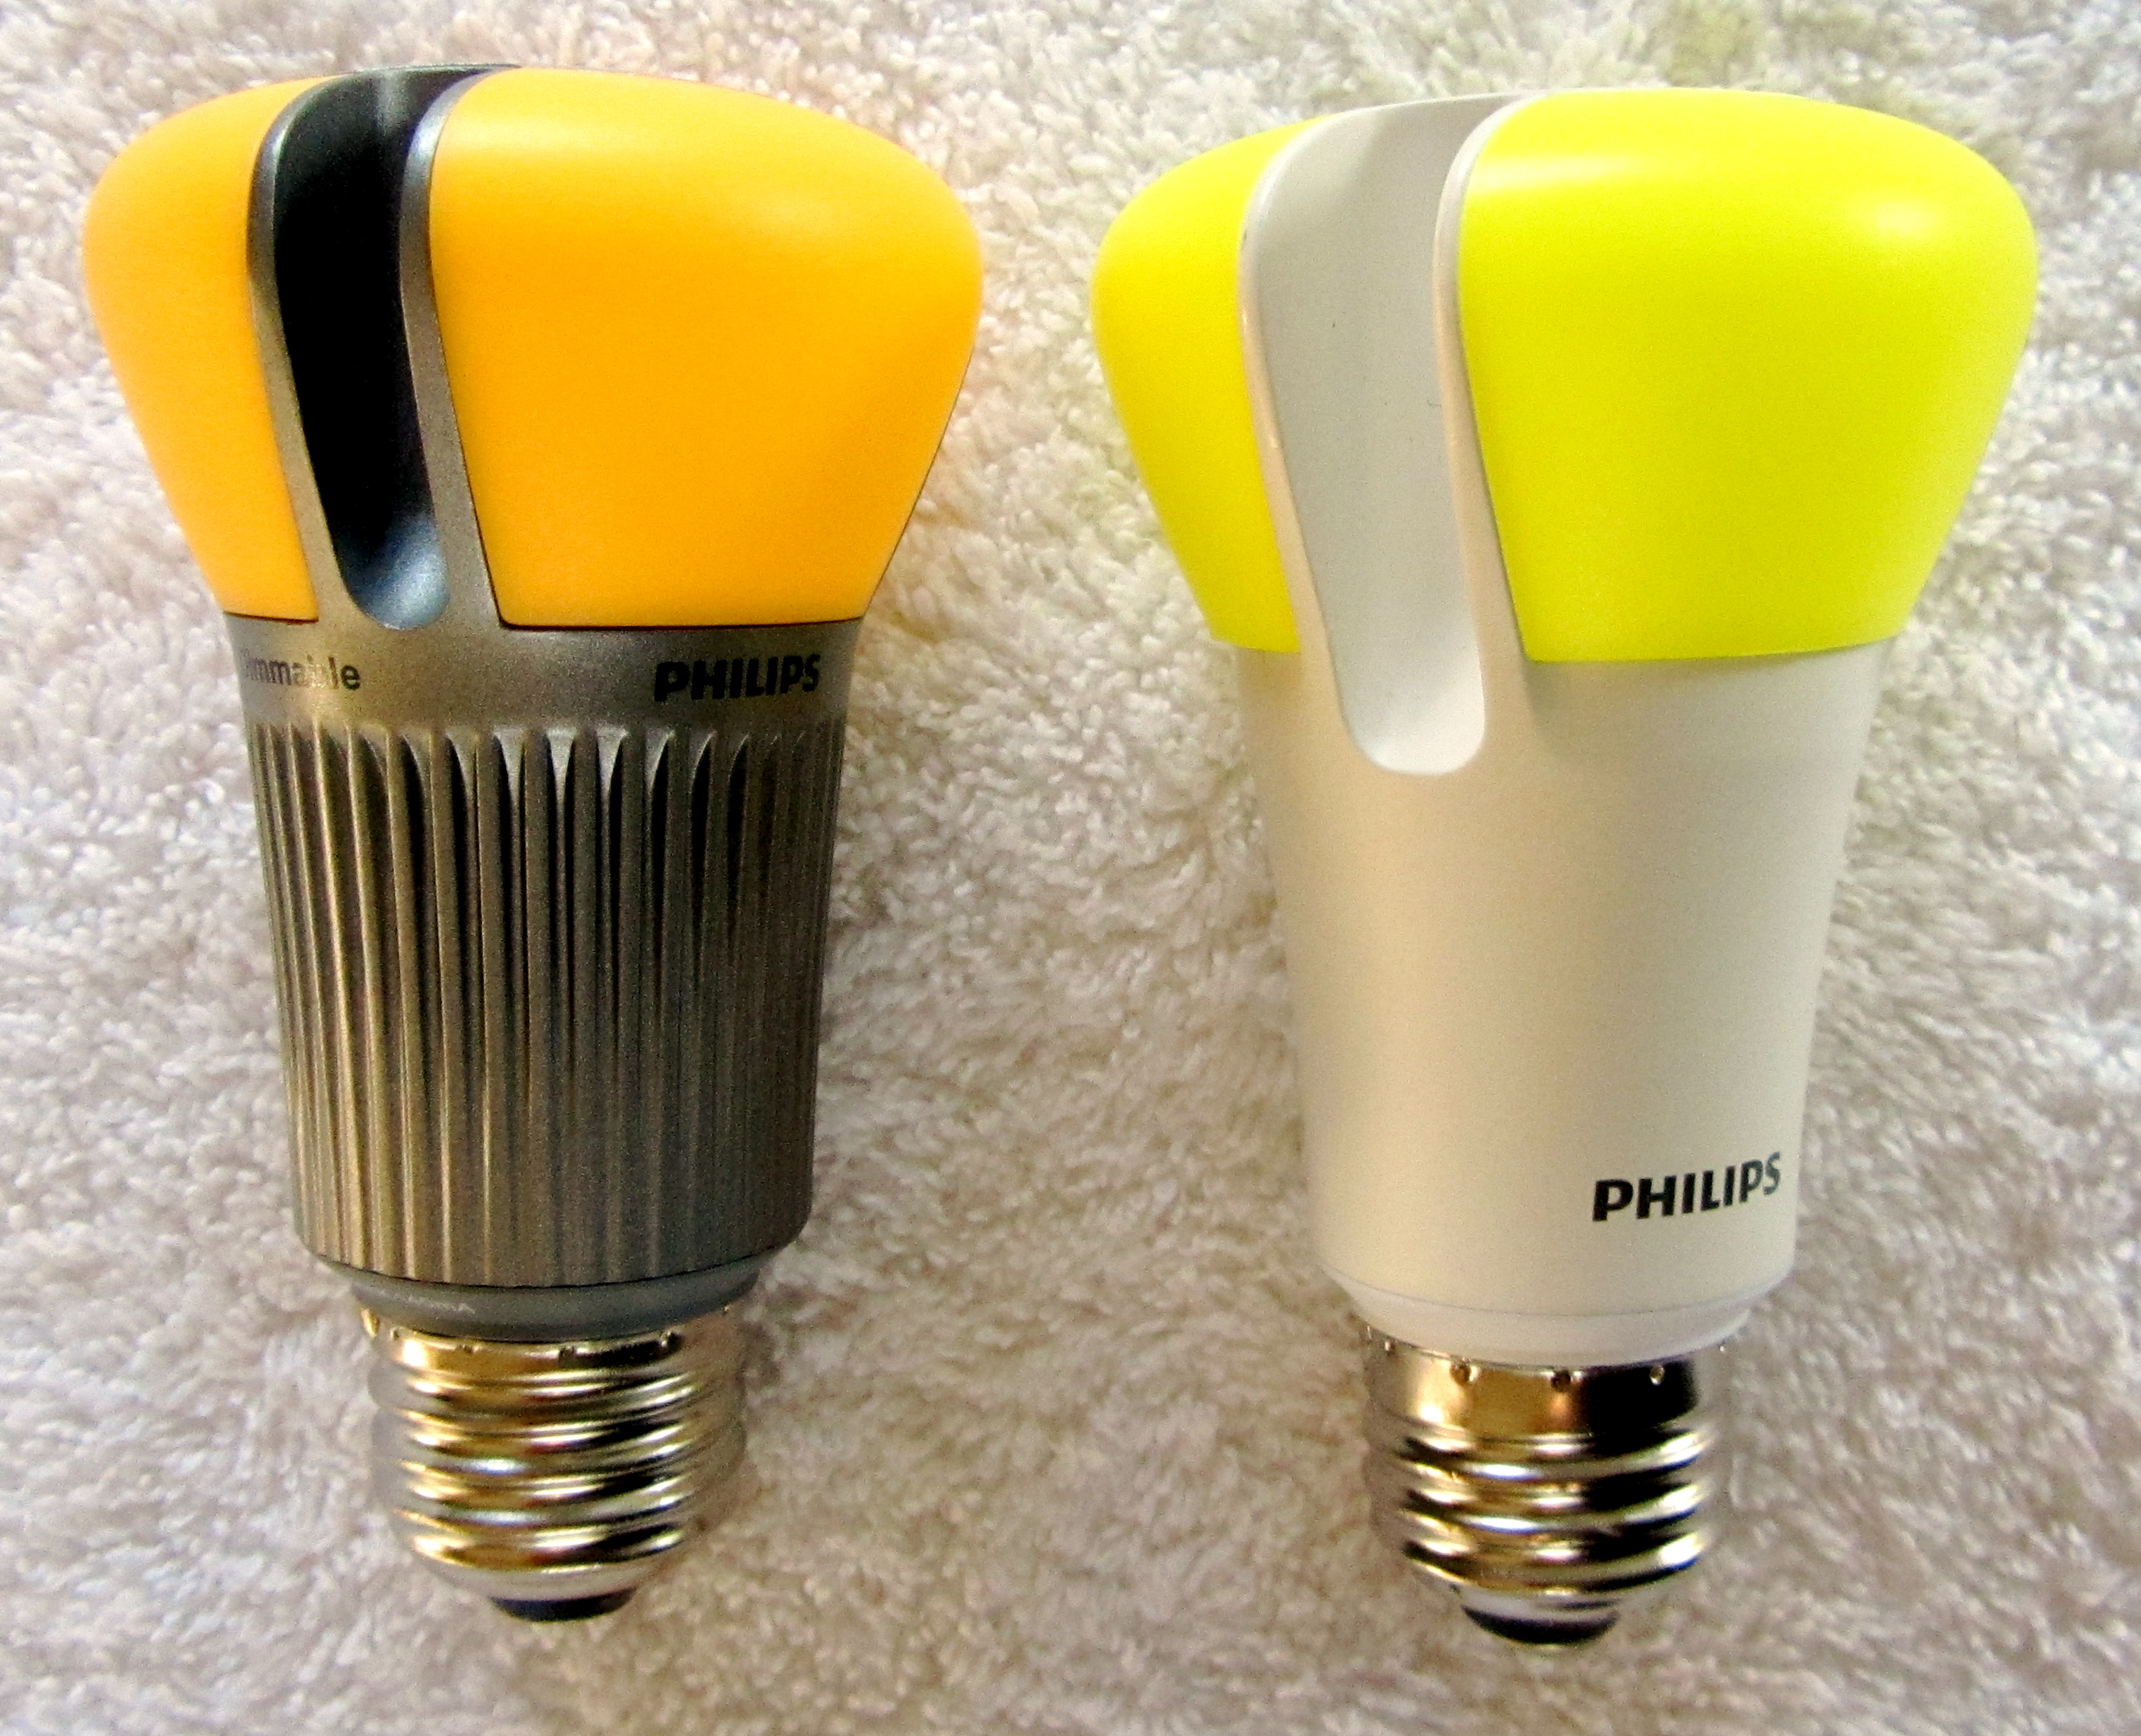 LED lighting squeezed into a familiar incandescent bulb form factor.